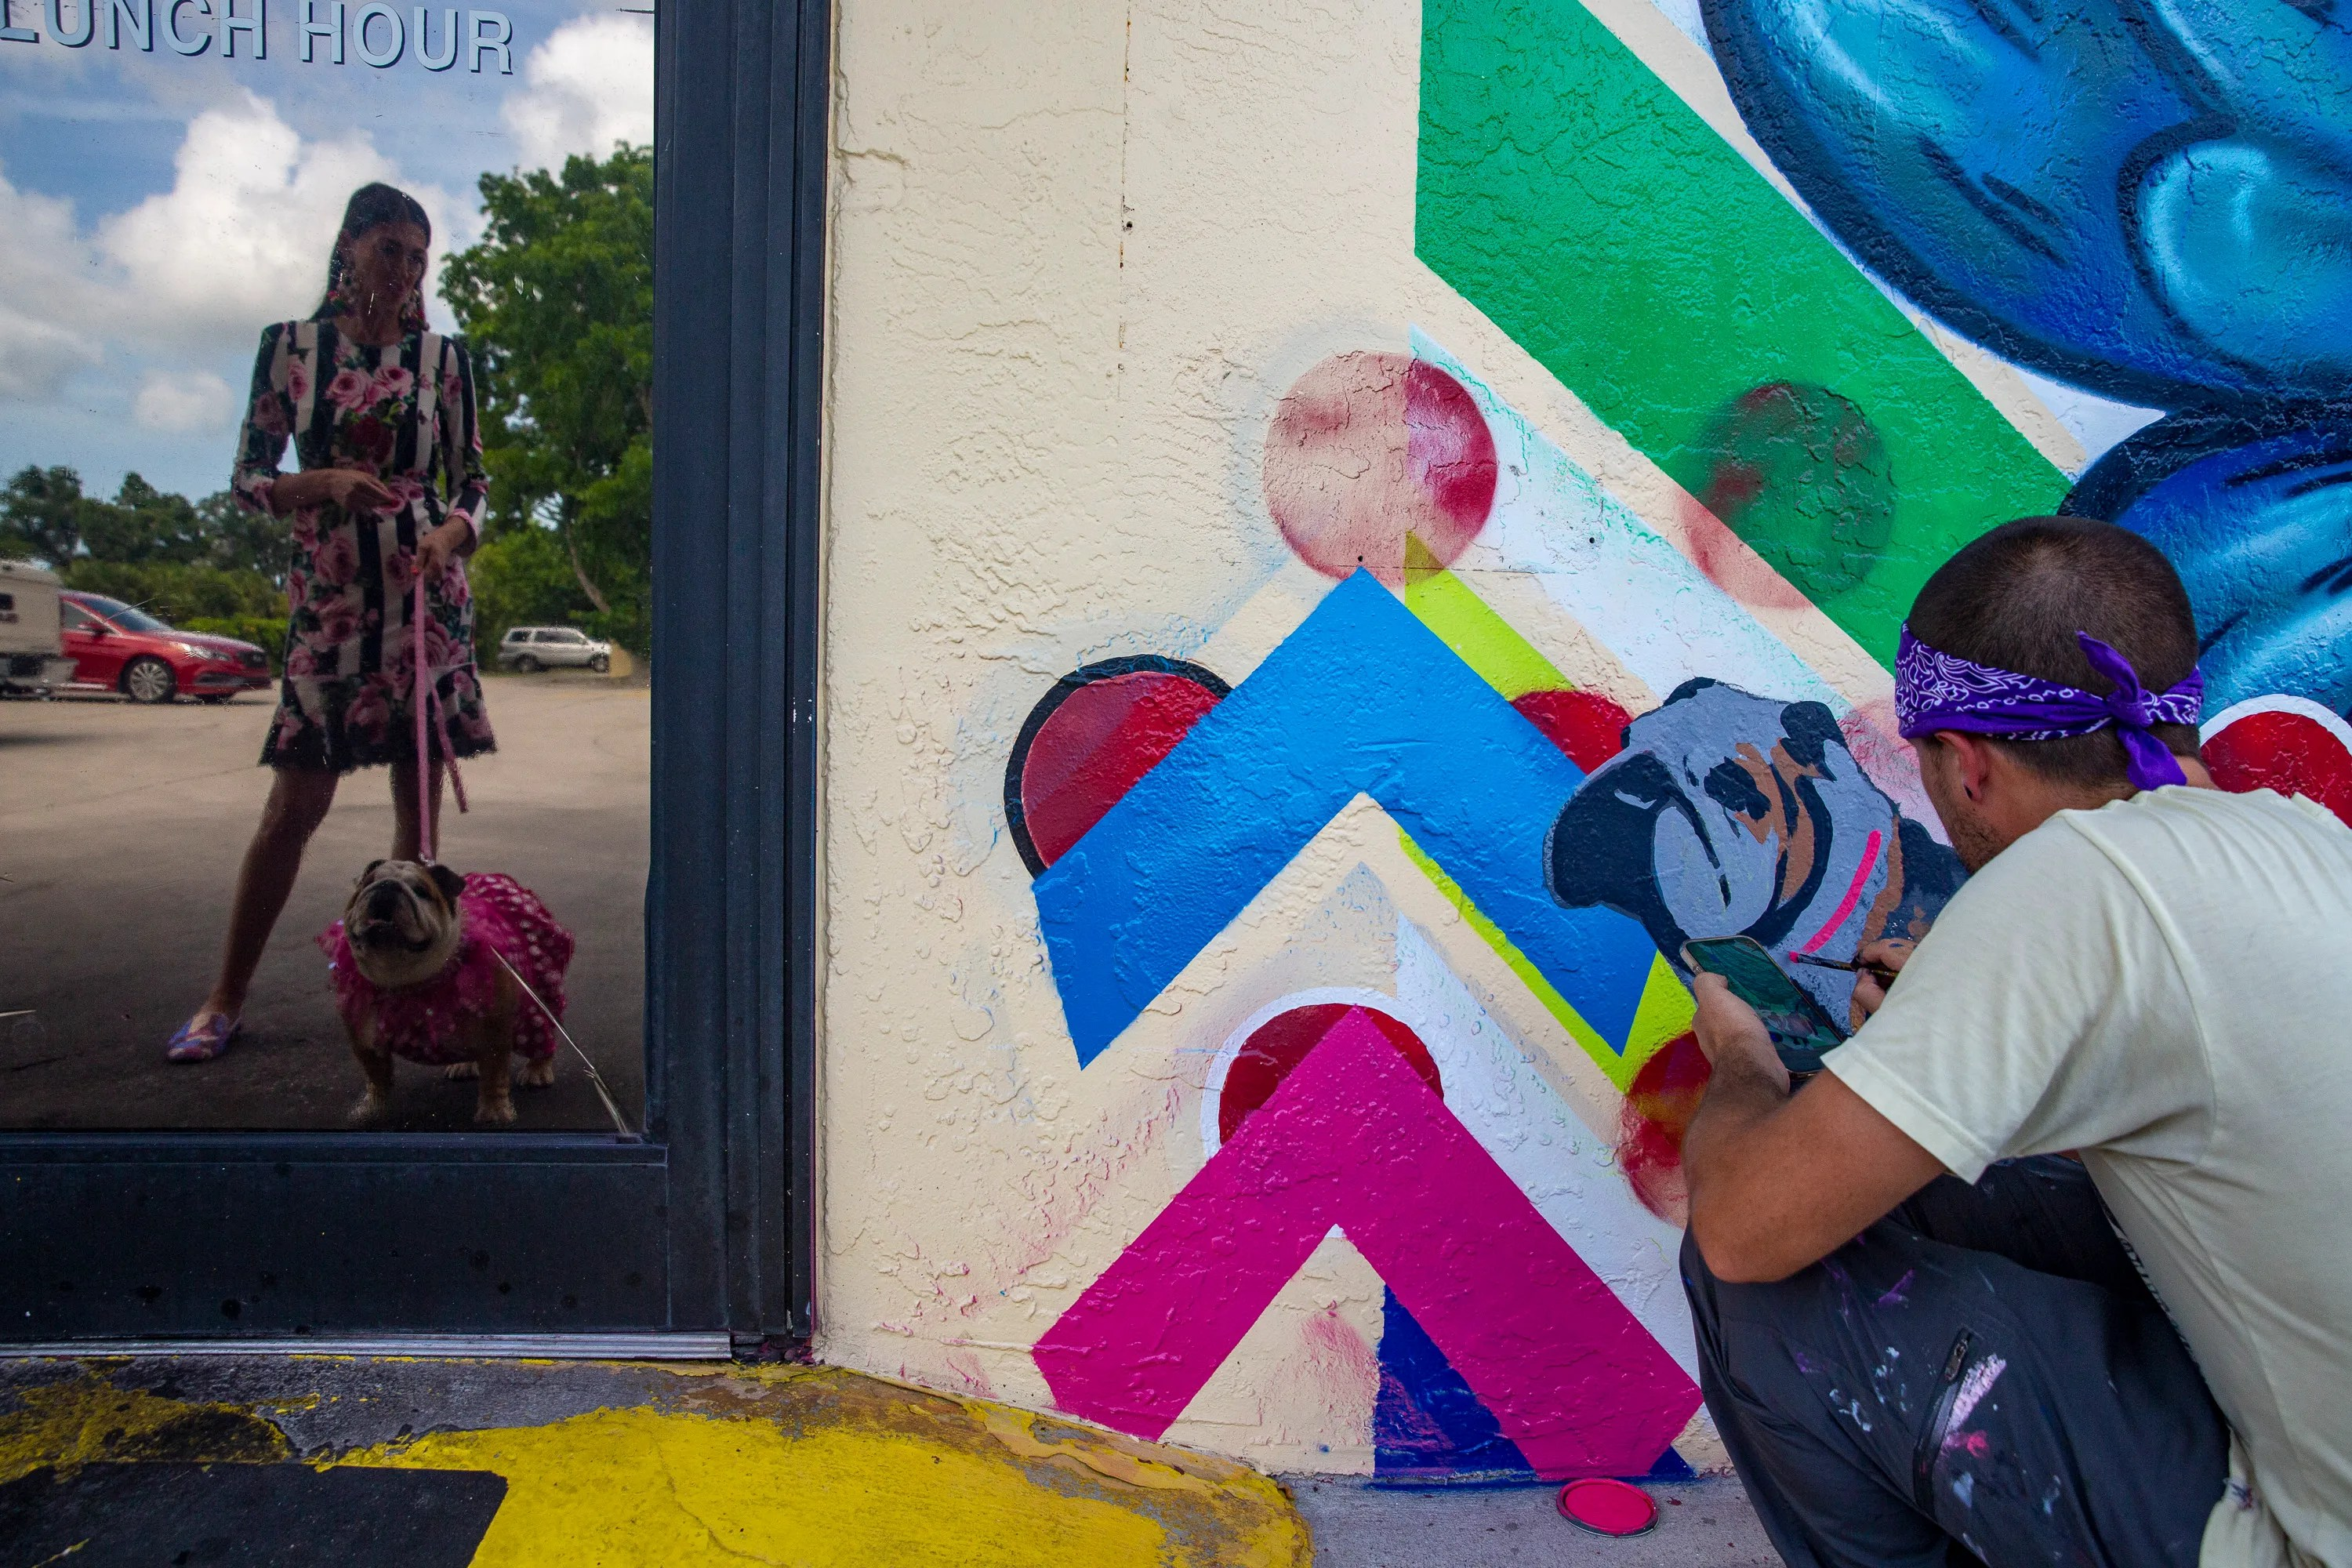 Emily Monty, co-owner of Spanky's Speakeasy watches artist Marus Zotter work on adding English bulldog named Bubbles to her new mural, Friday, July 9, 2021, at Spanky's Speakeasy in Naples.